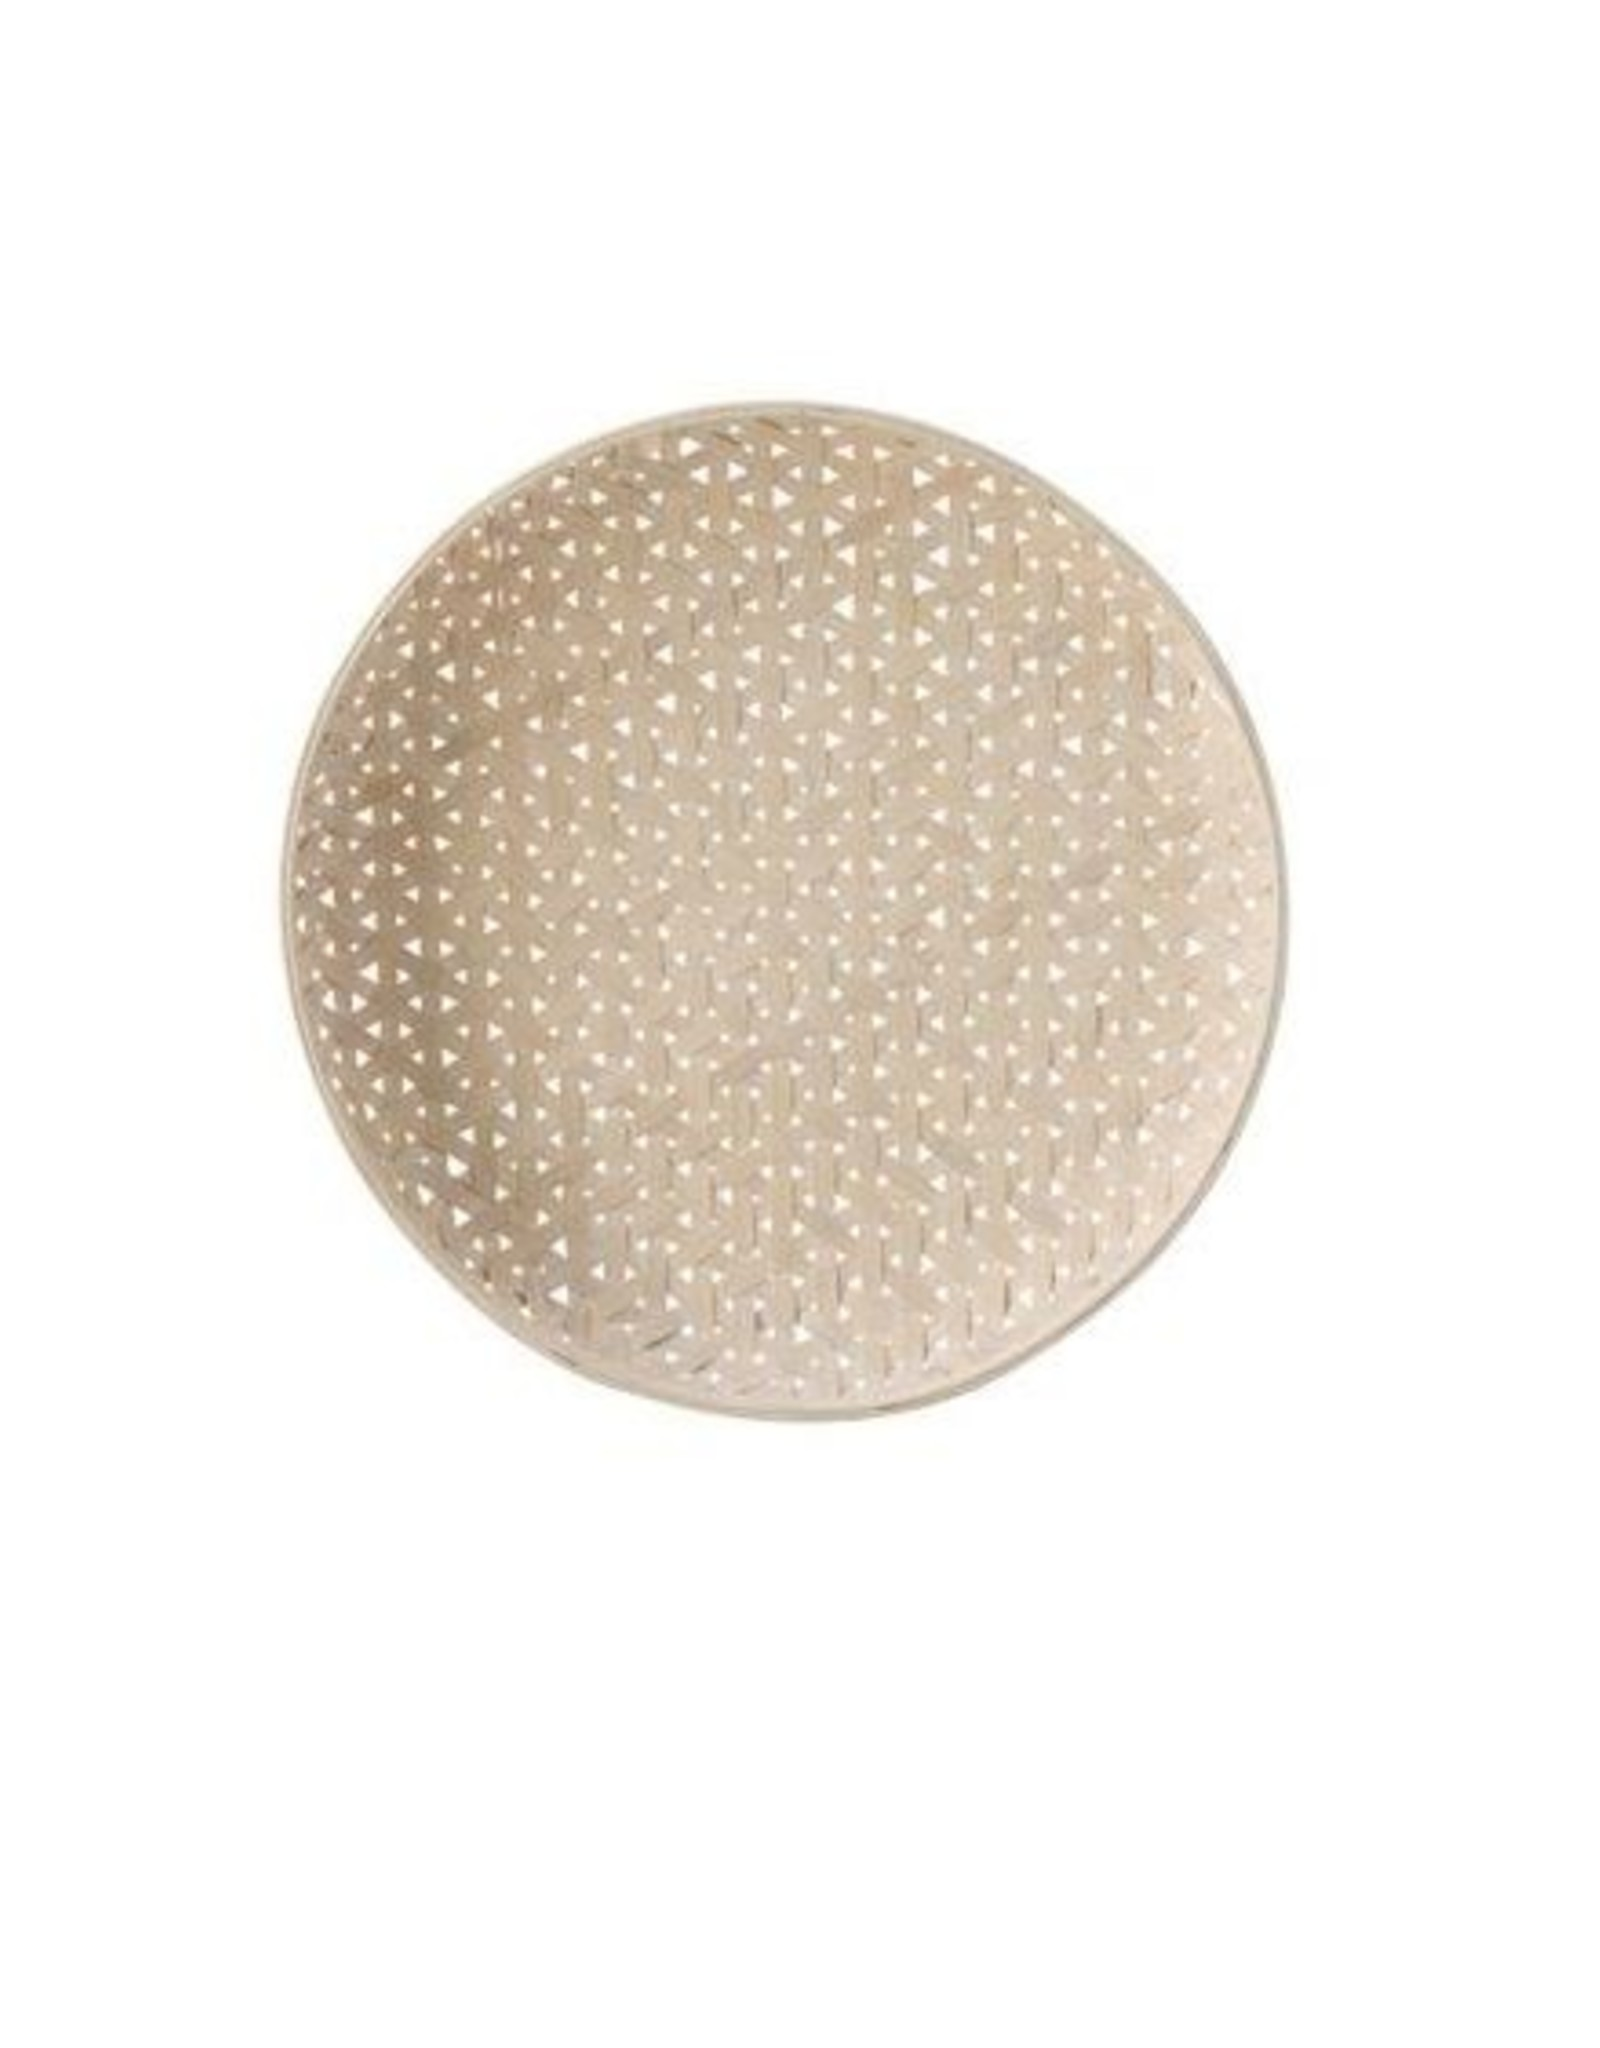 Round Woven Wood Baskets - White Washed